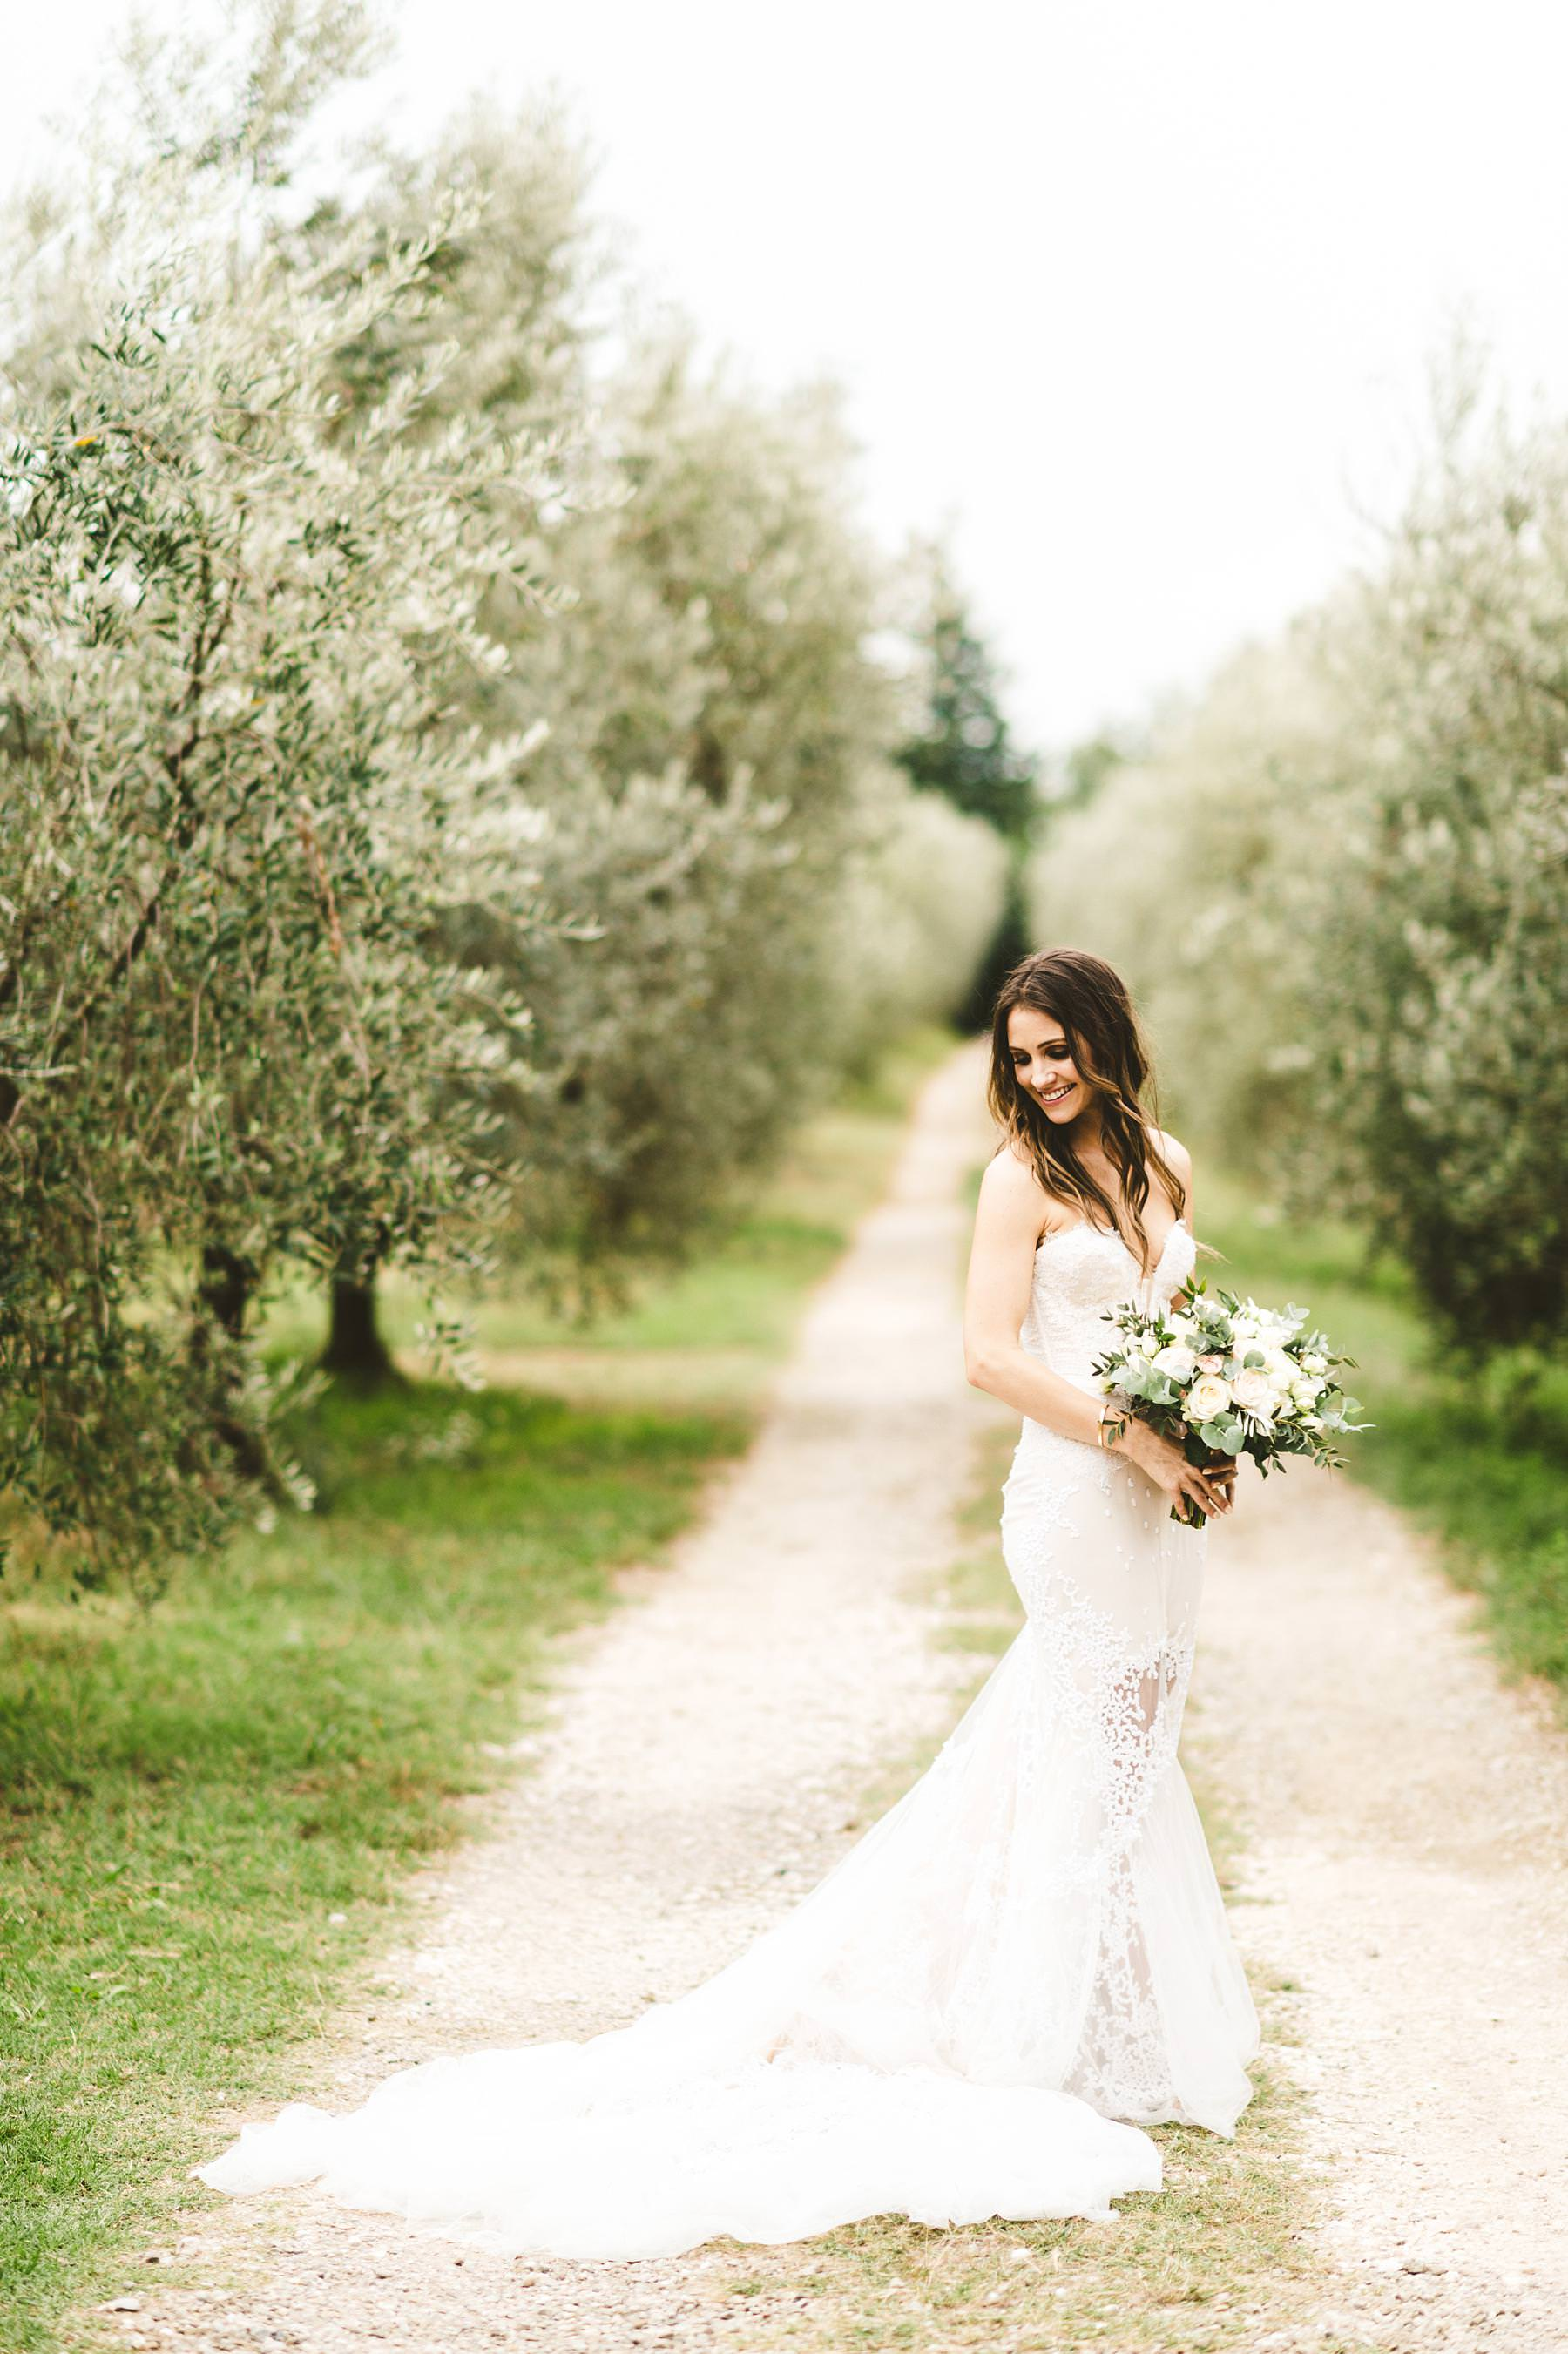 Beautiful bridal portrait in a white street in the olive groves of Chianti near the historical residence of Villa Il Poggiale